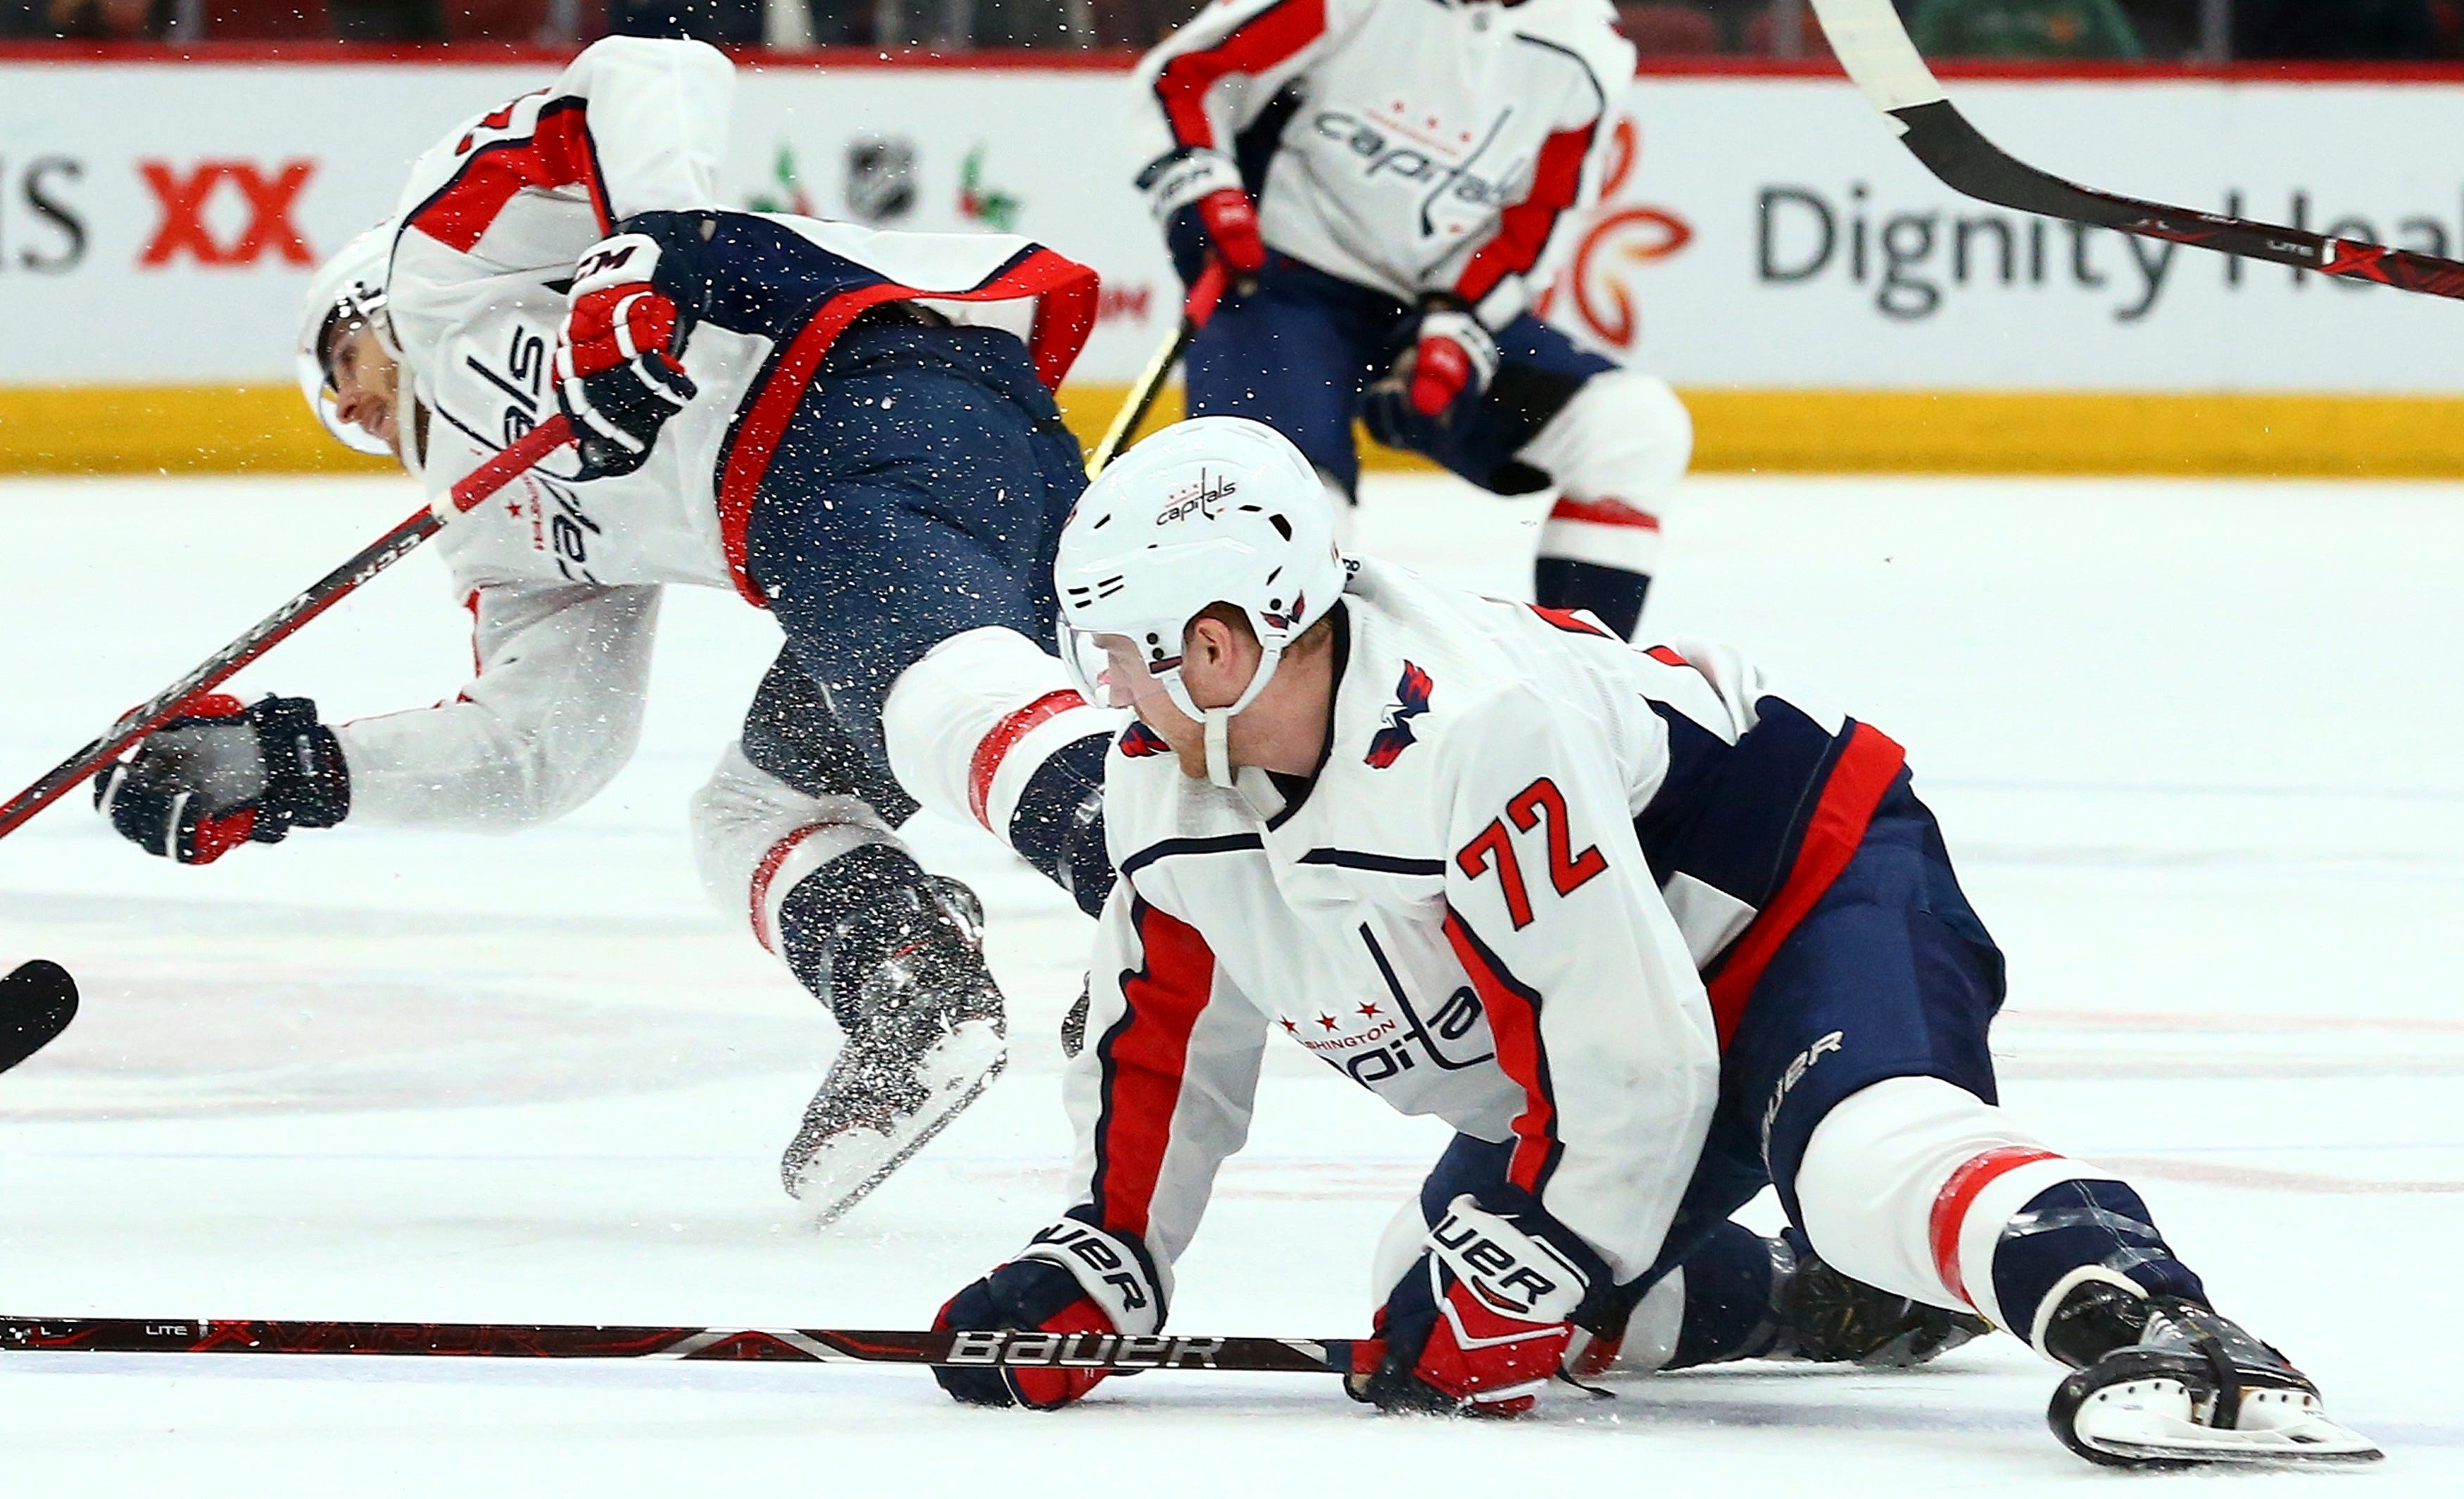 Burakovsky's goal sends Capitals to 4-2 win over Coyotes